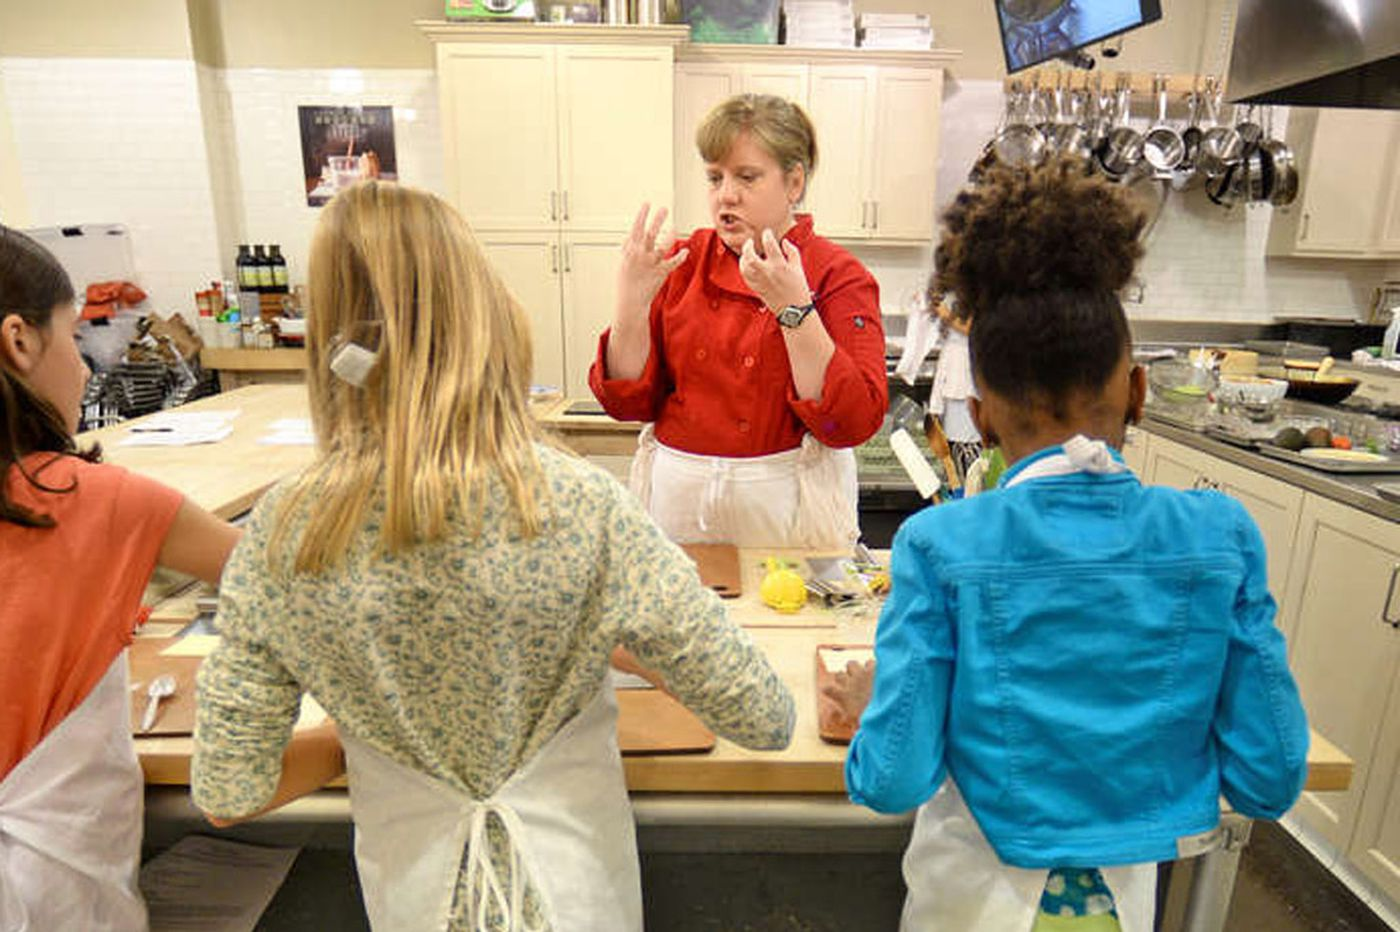 Culinary classes in the area